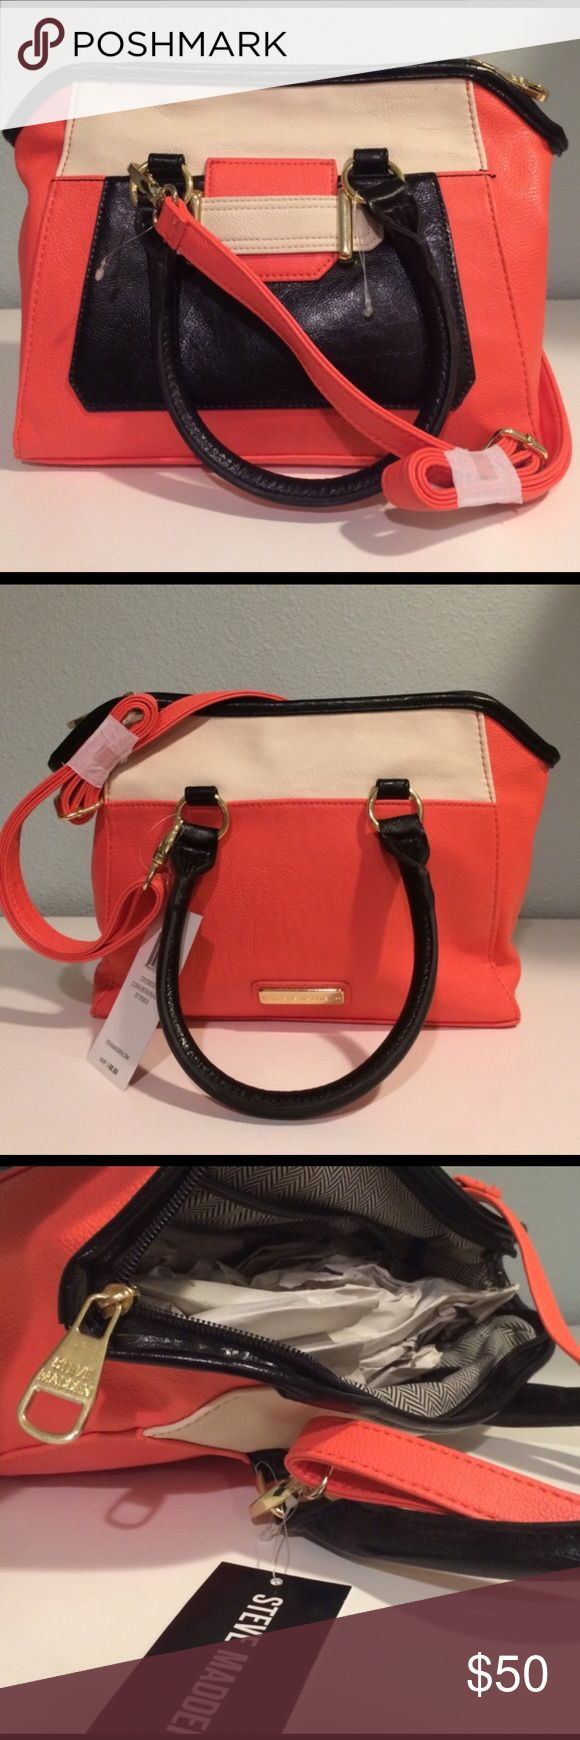 Steve Madden purse Super cute purse can be worn as a cross body or just carried by the handles. Nothing wrong with it I bought an identical one like this one on here and my parents got me the same one for my birthday 😂 Steve Madden Bags Crossbody Bags